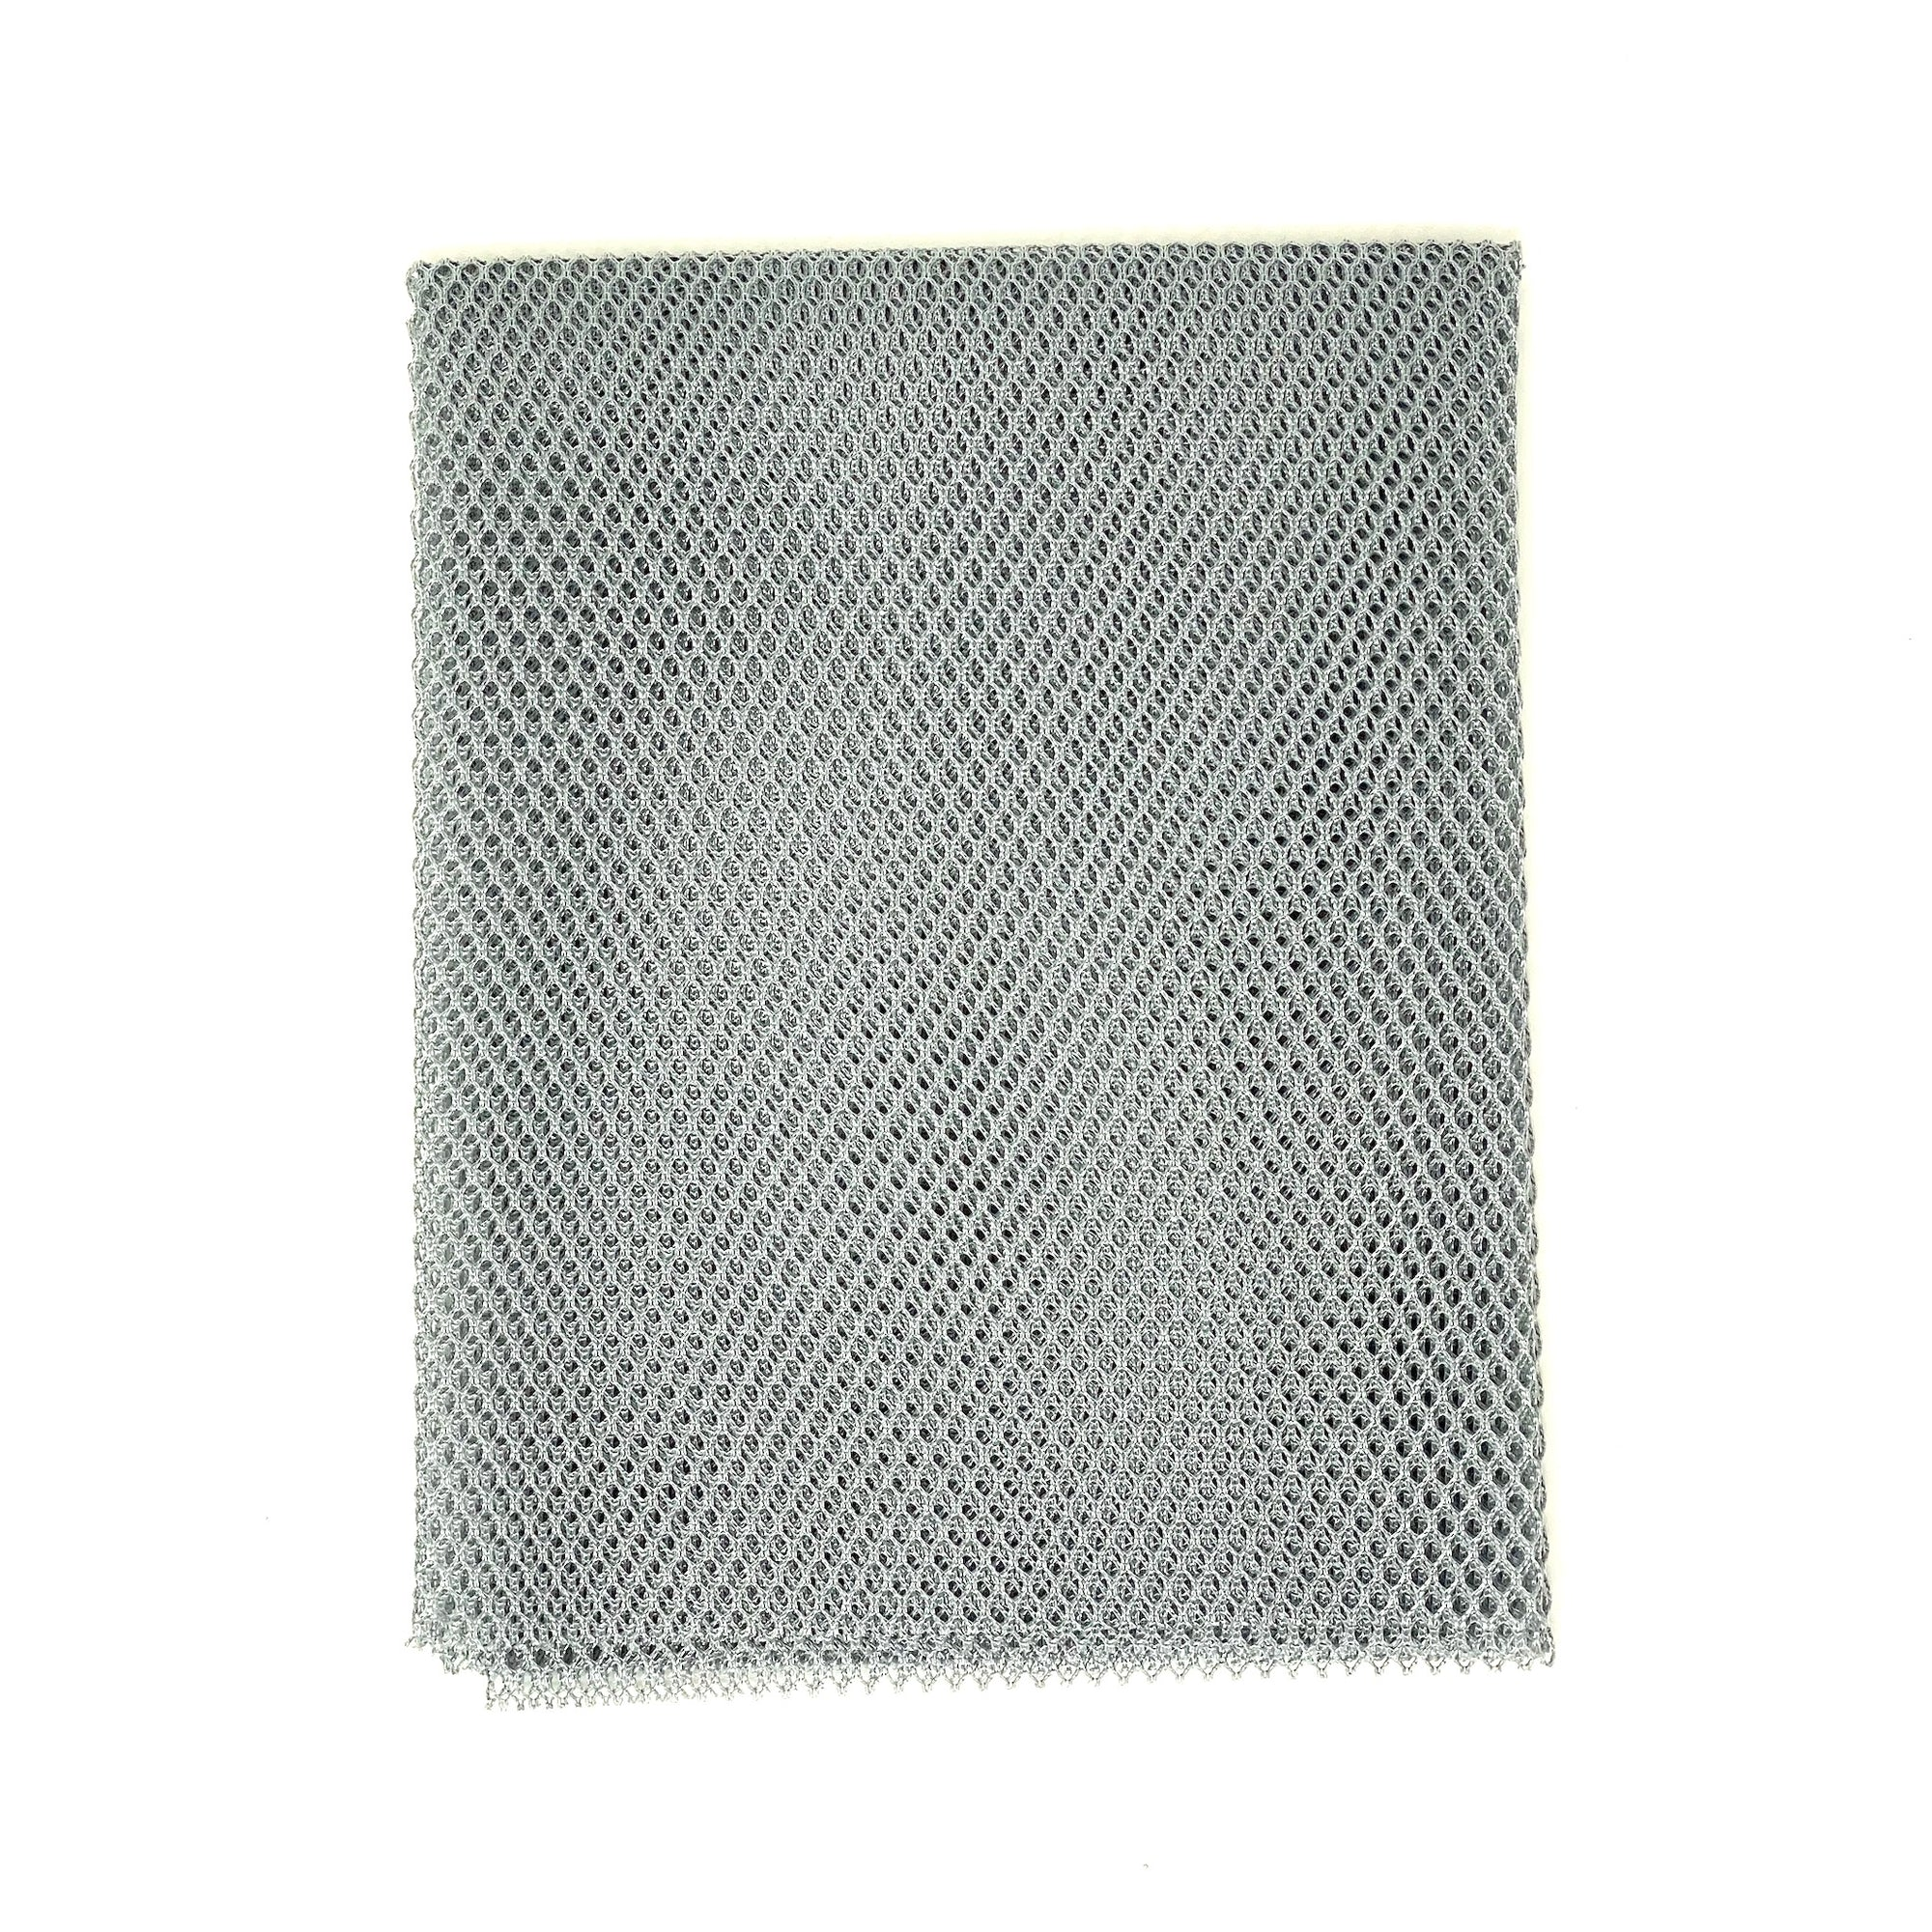 Mesh Fabric - Pewter